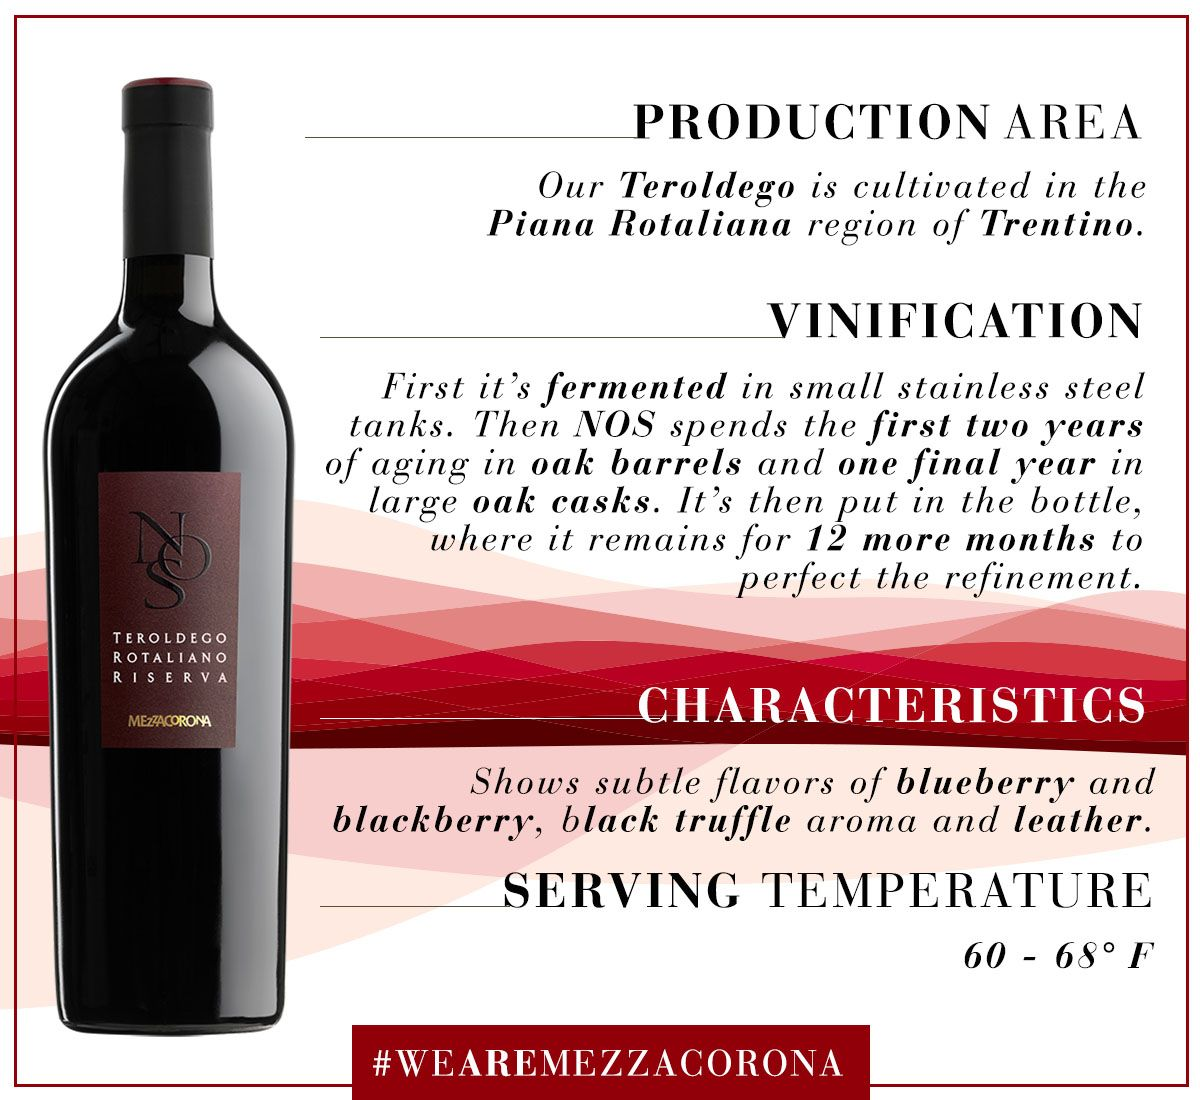 A Tale Of Teroldego From Vine To Glass Wearemezzacorona Vinification Wine Bottle Stainless Steel Tanks